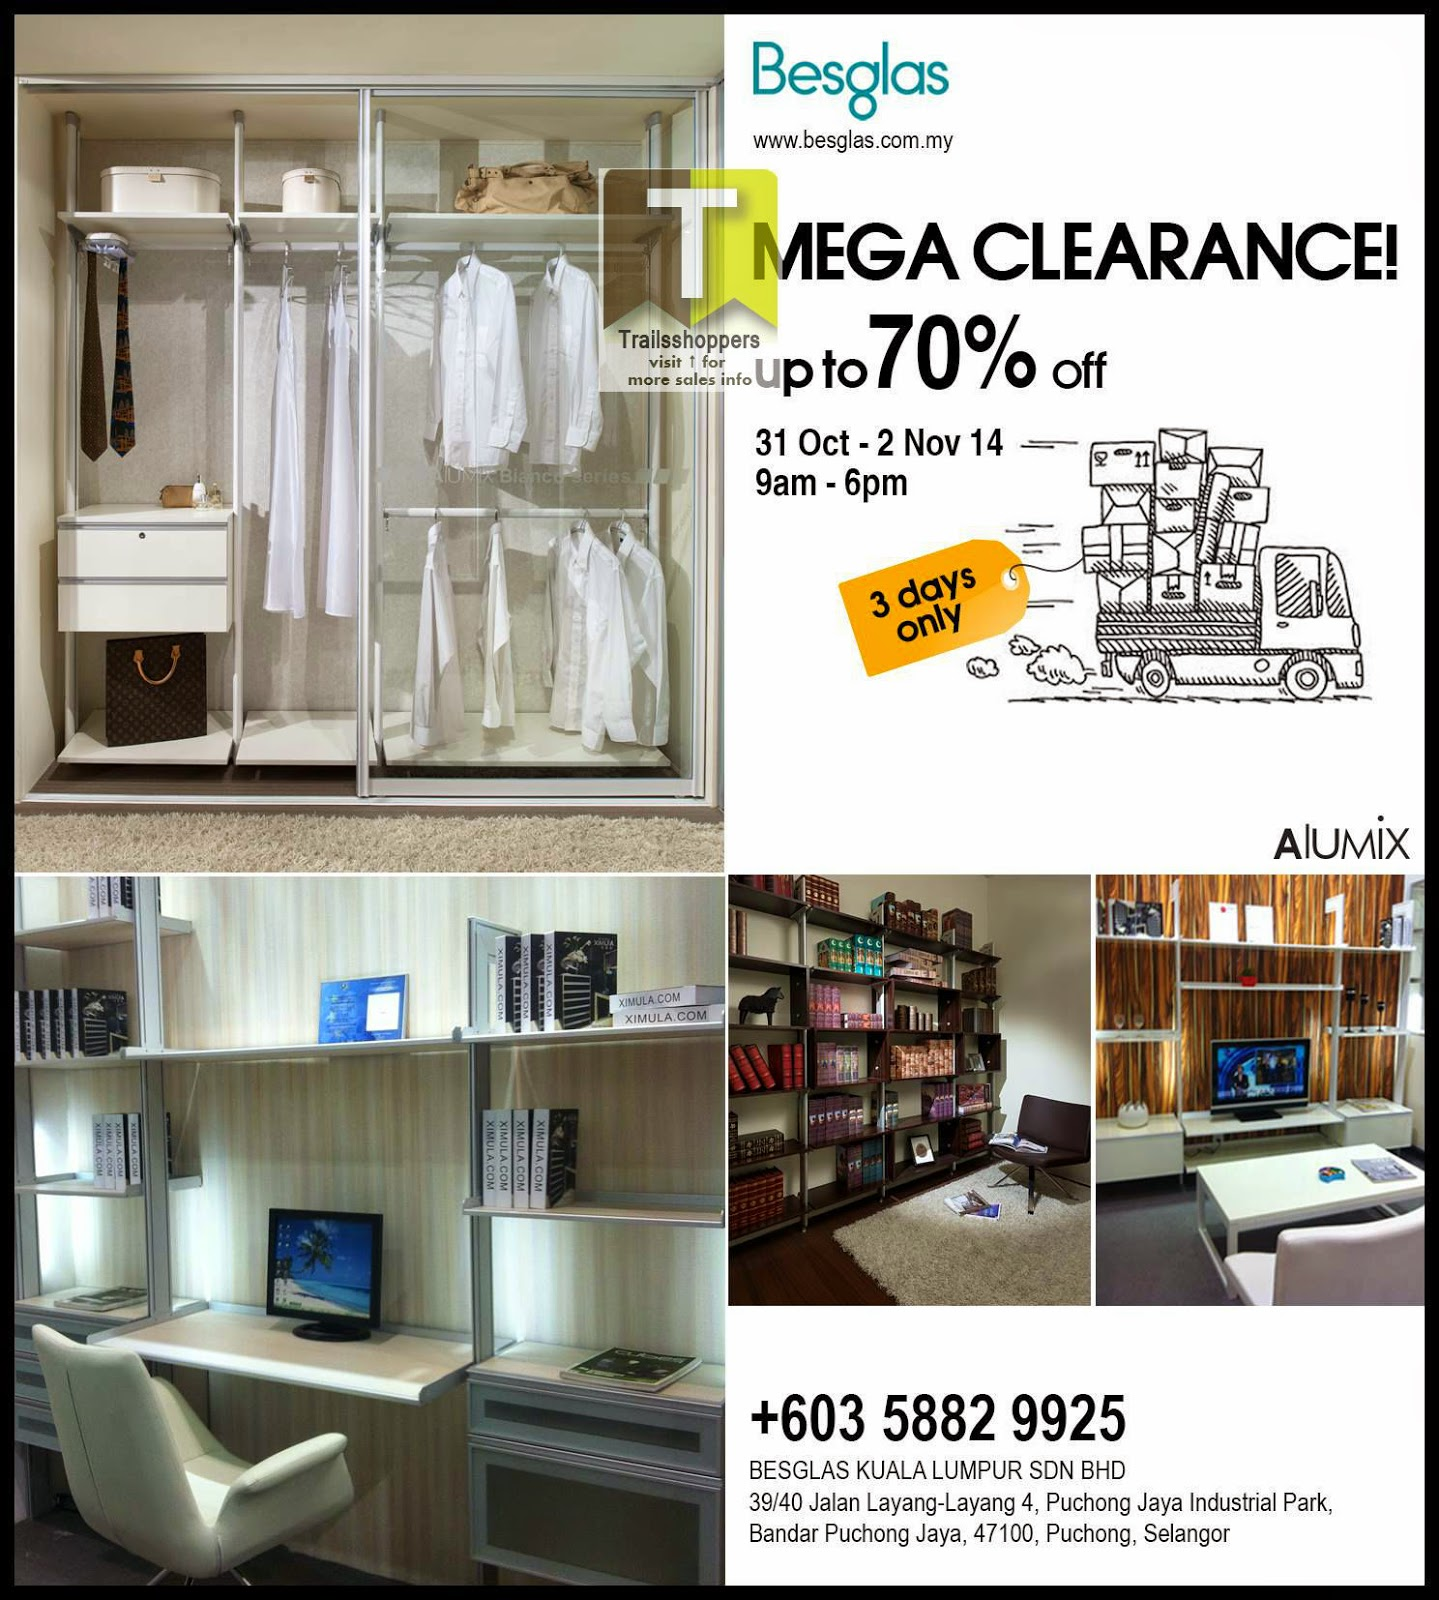 Besglas Mega Clearance up to 70% off puchong